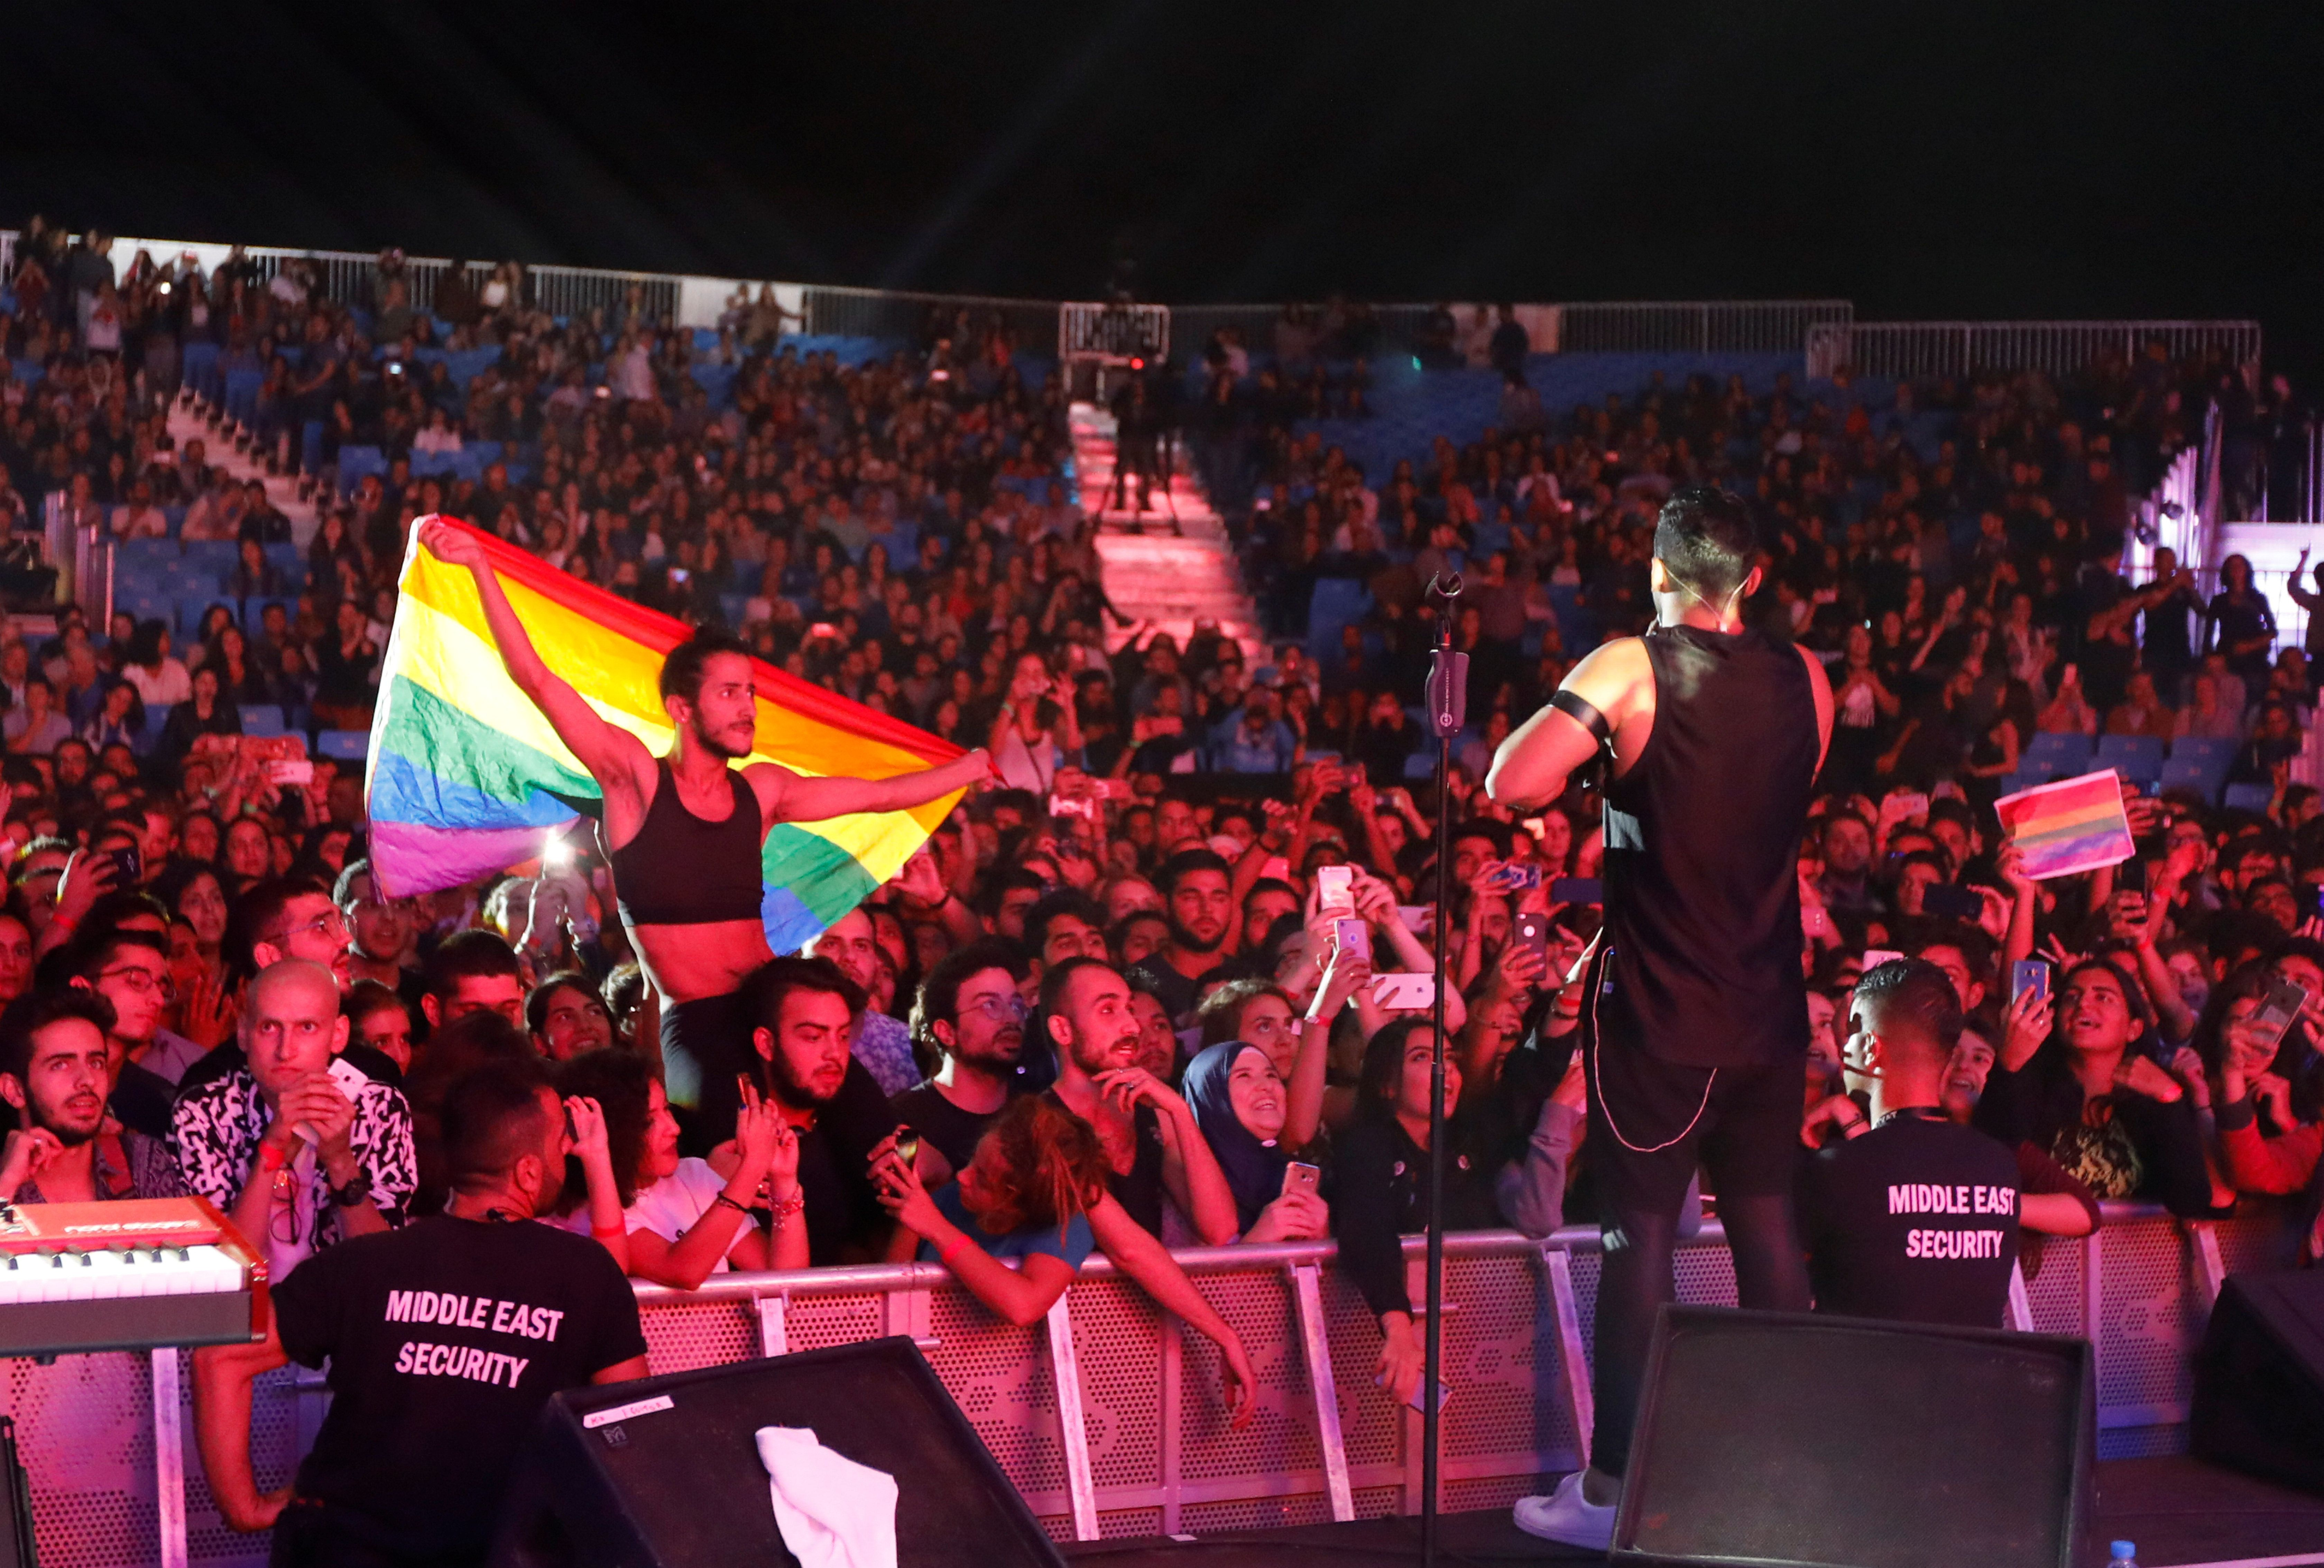 At a Sept. 22 concert packed with 30,000 people and headlined by Mashrou' Leila, a Lebanese alternative rock band whose